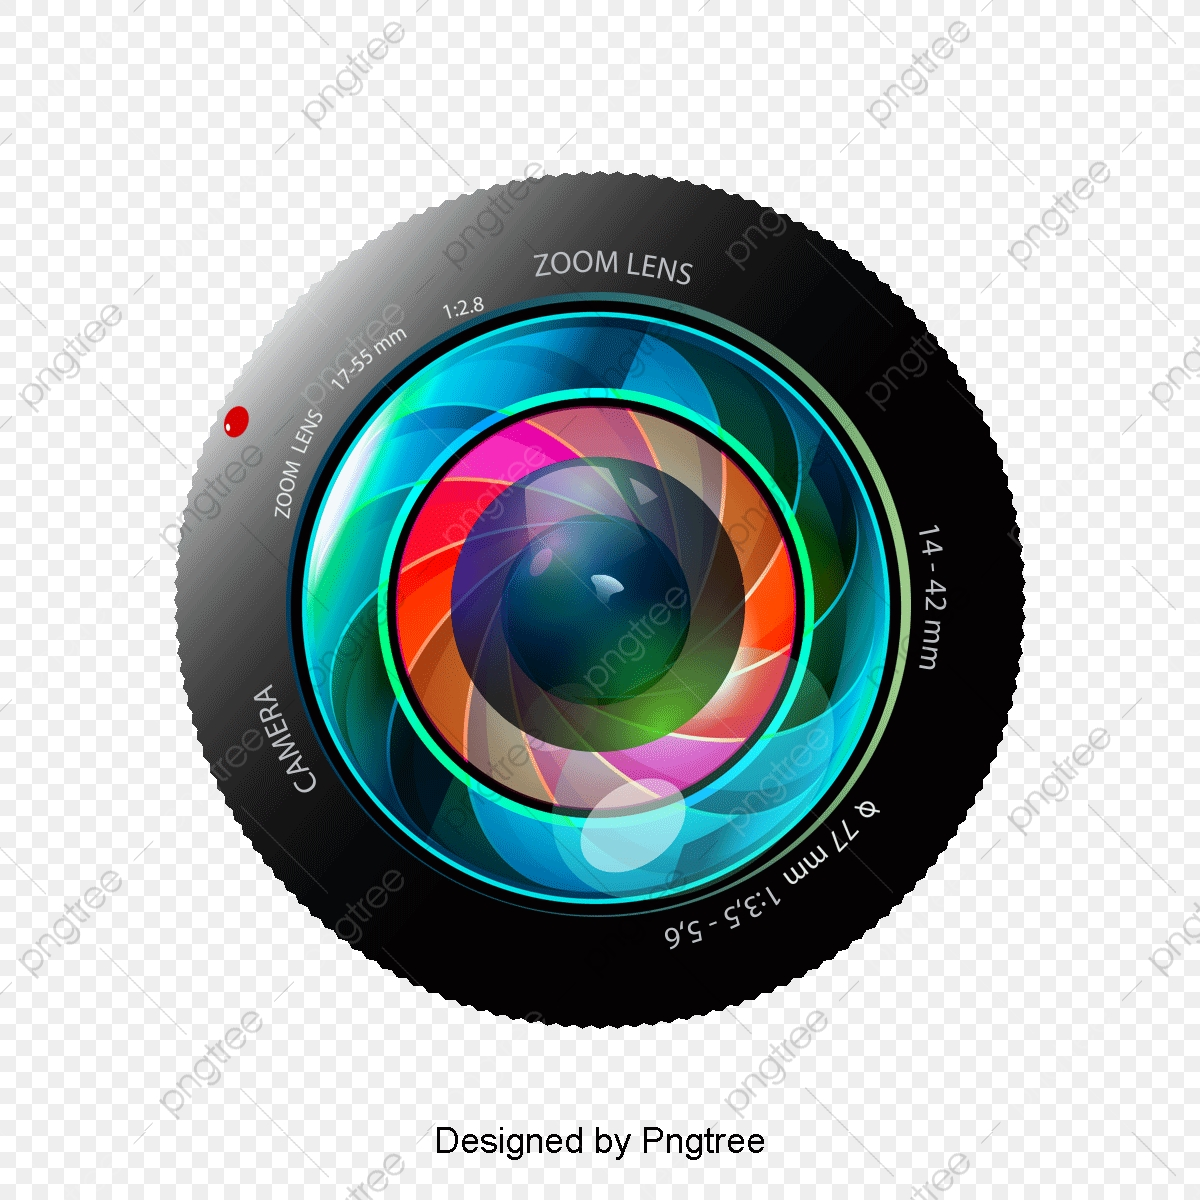 hight resolution of commercial use resource upgrade to premium plan and get license authorization upgradenow camera lens camera clipart